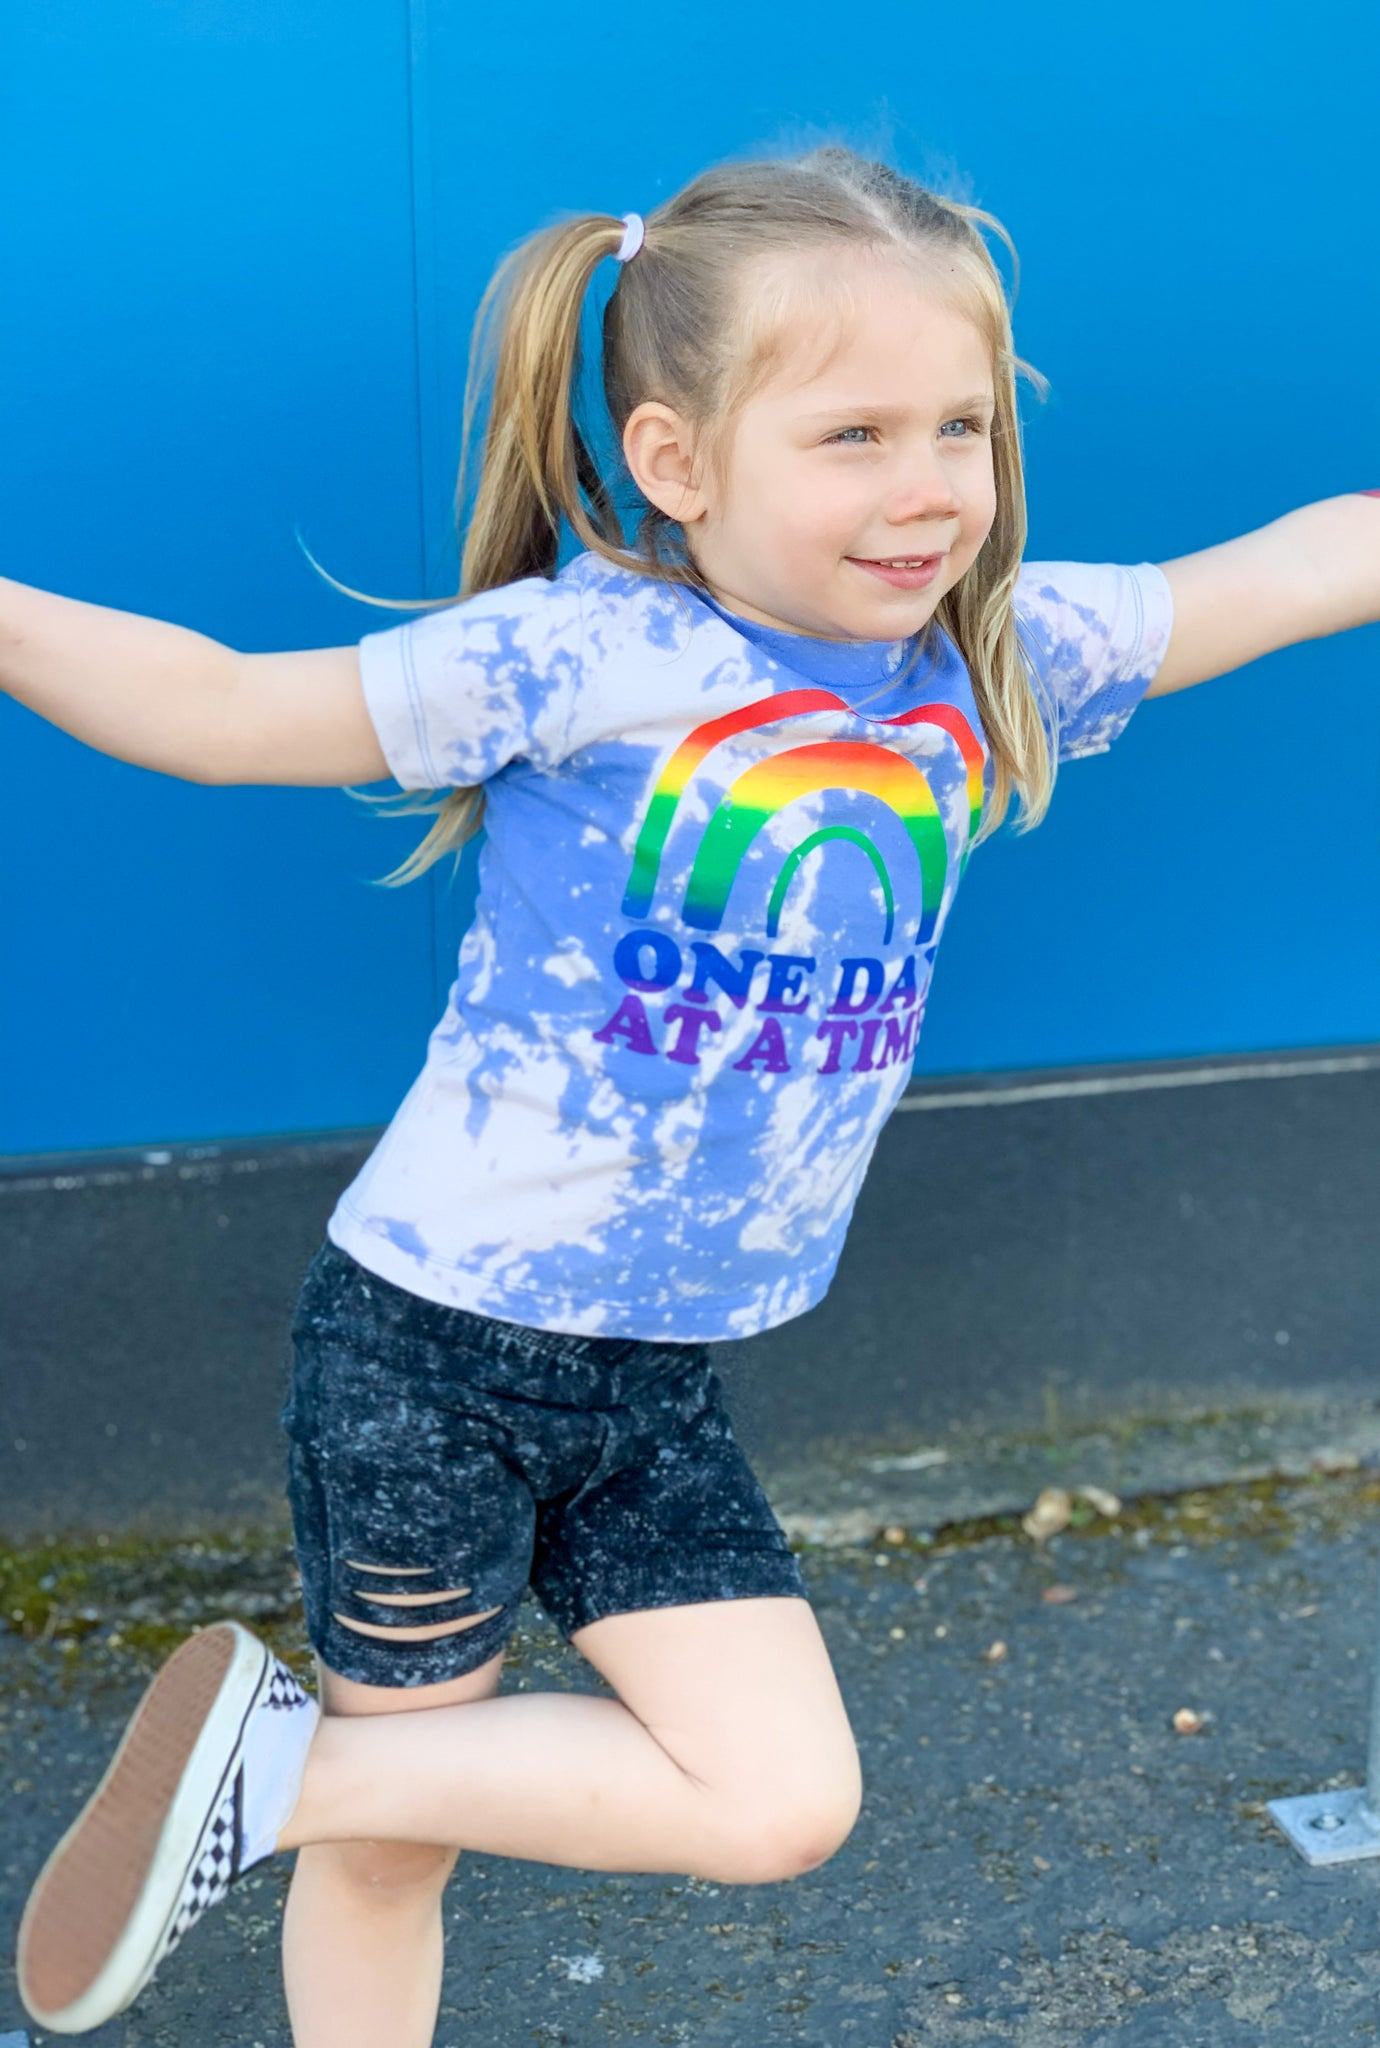 One Day At A Time Acid Washed Rainbow - Toddler/Kids Tee